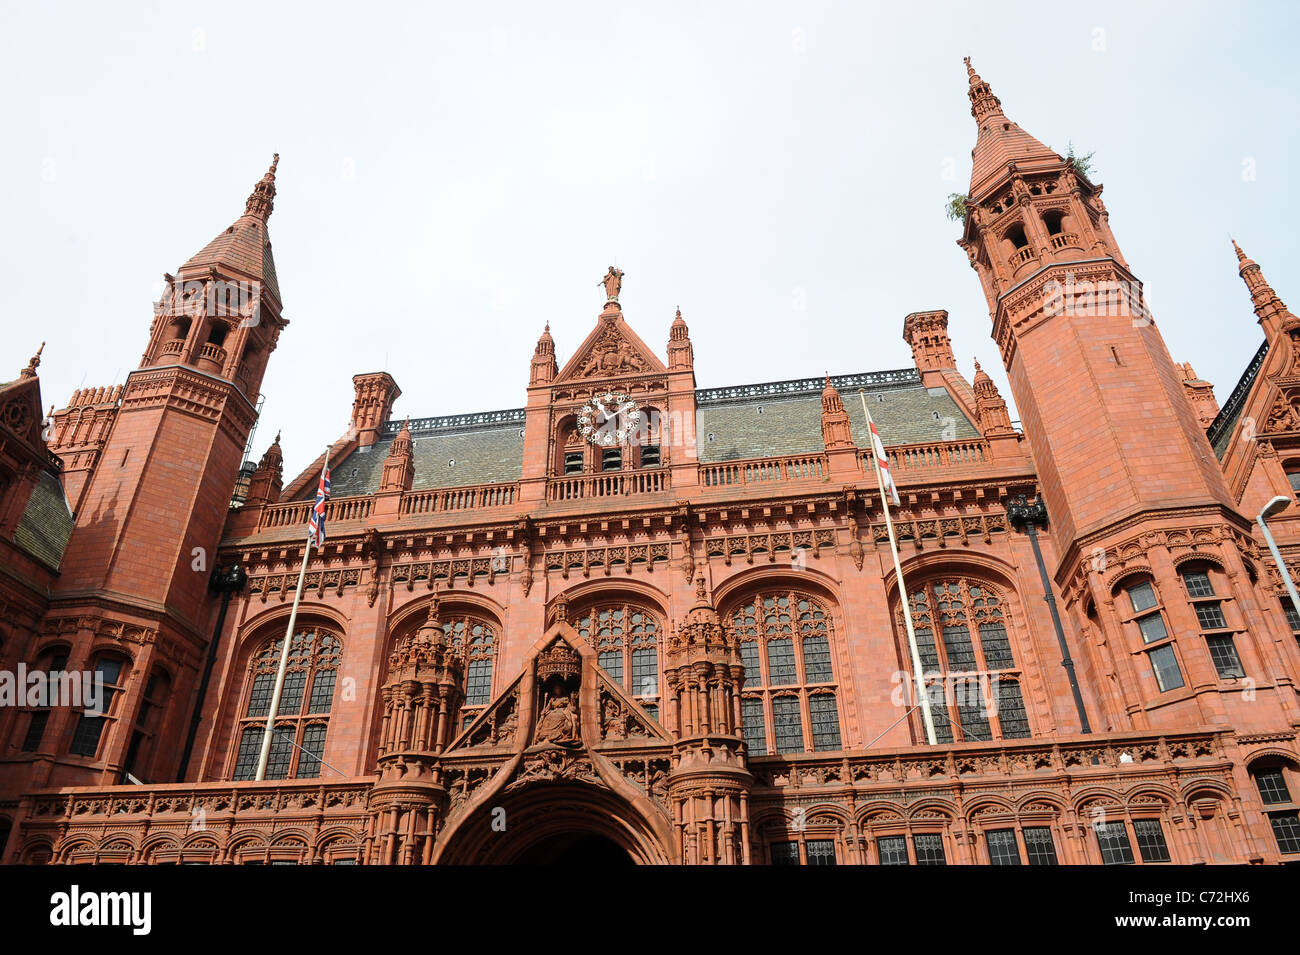 Birmingham Magistrate Court England West Midlands Uk - Stock Image